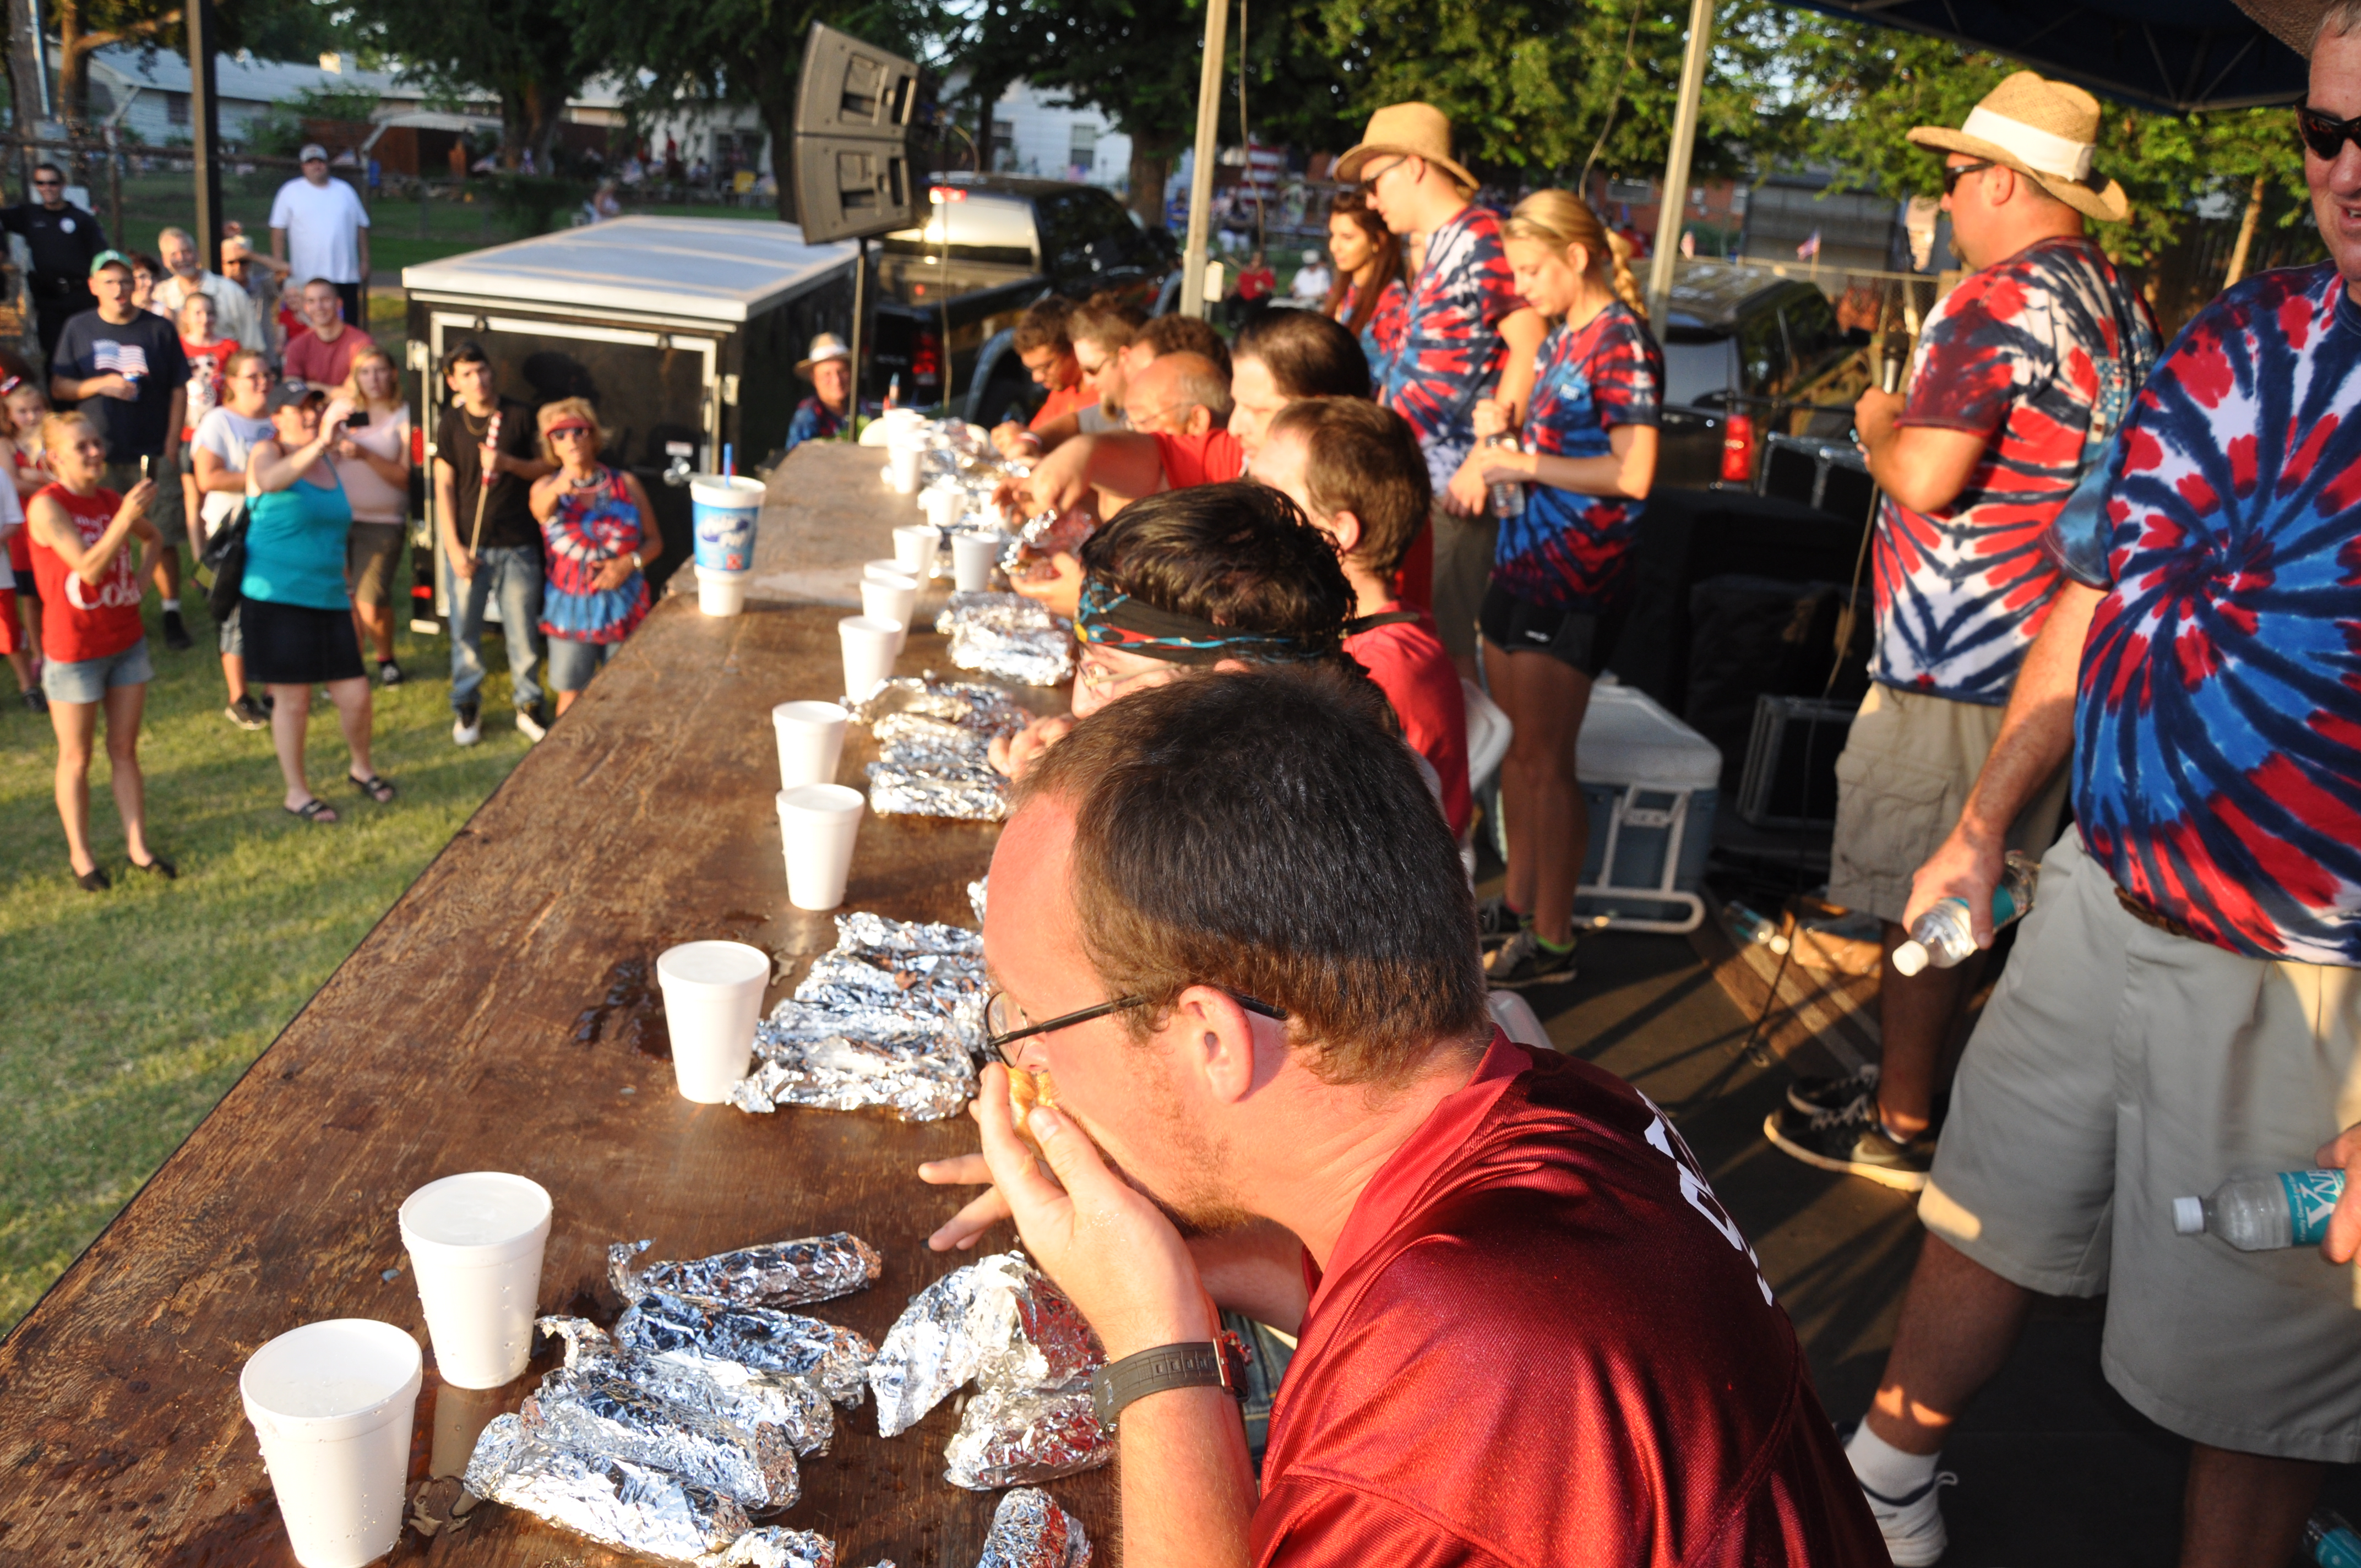 Contestants compete in the annual Freedom Fest Hot Dog Eating Contest